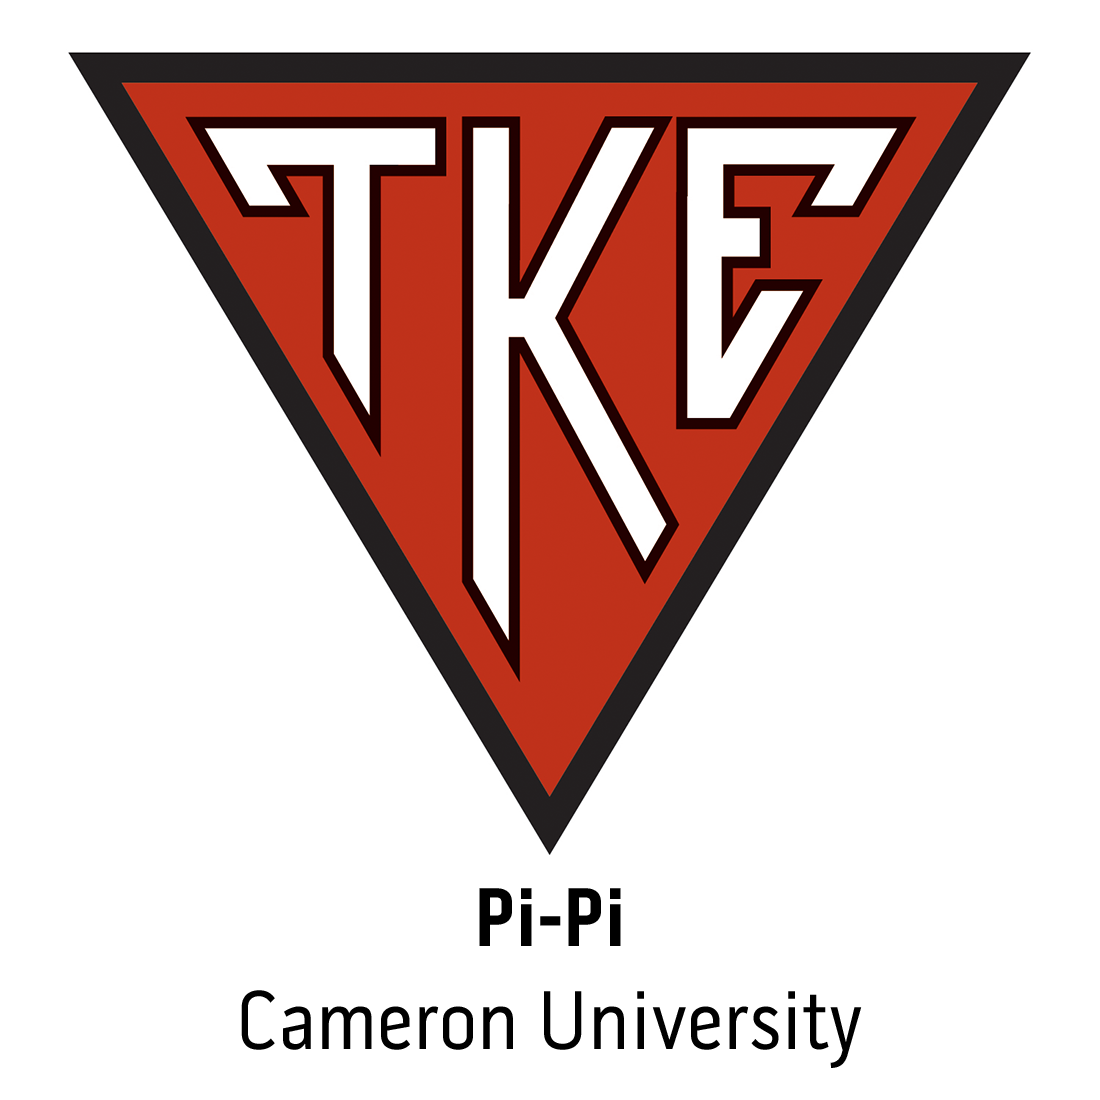 Pi-Pi Chapter at Cameron University